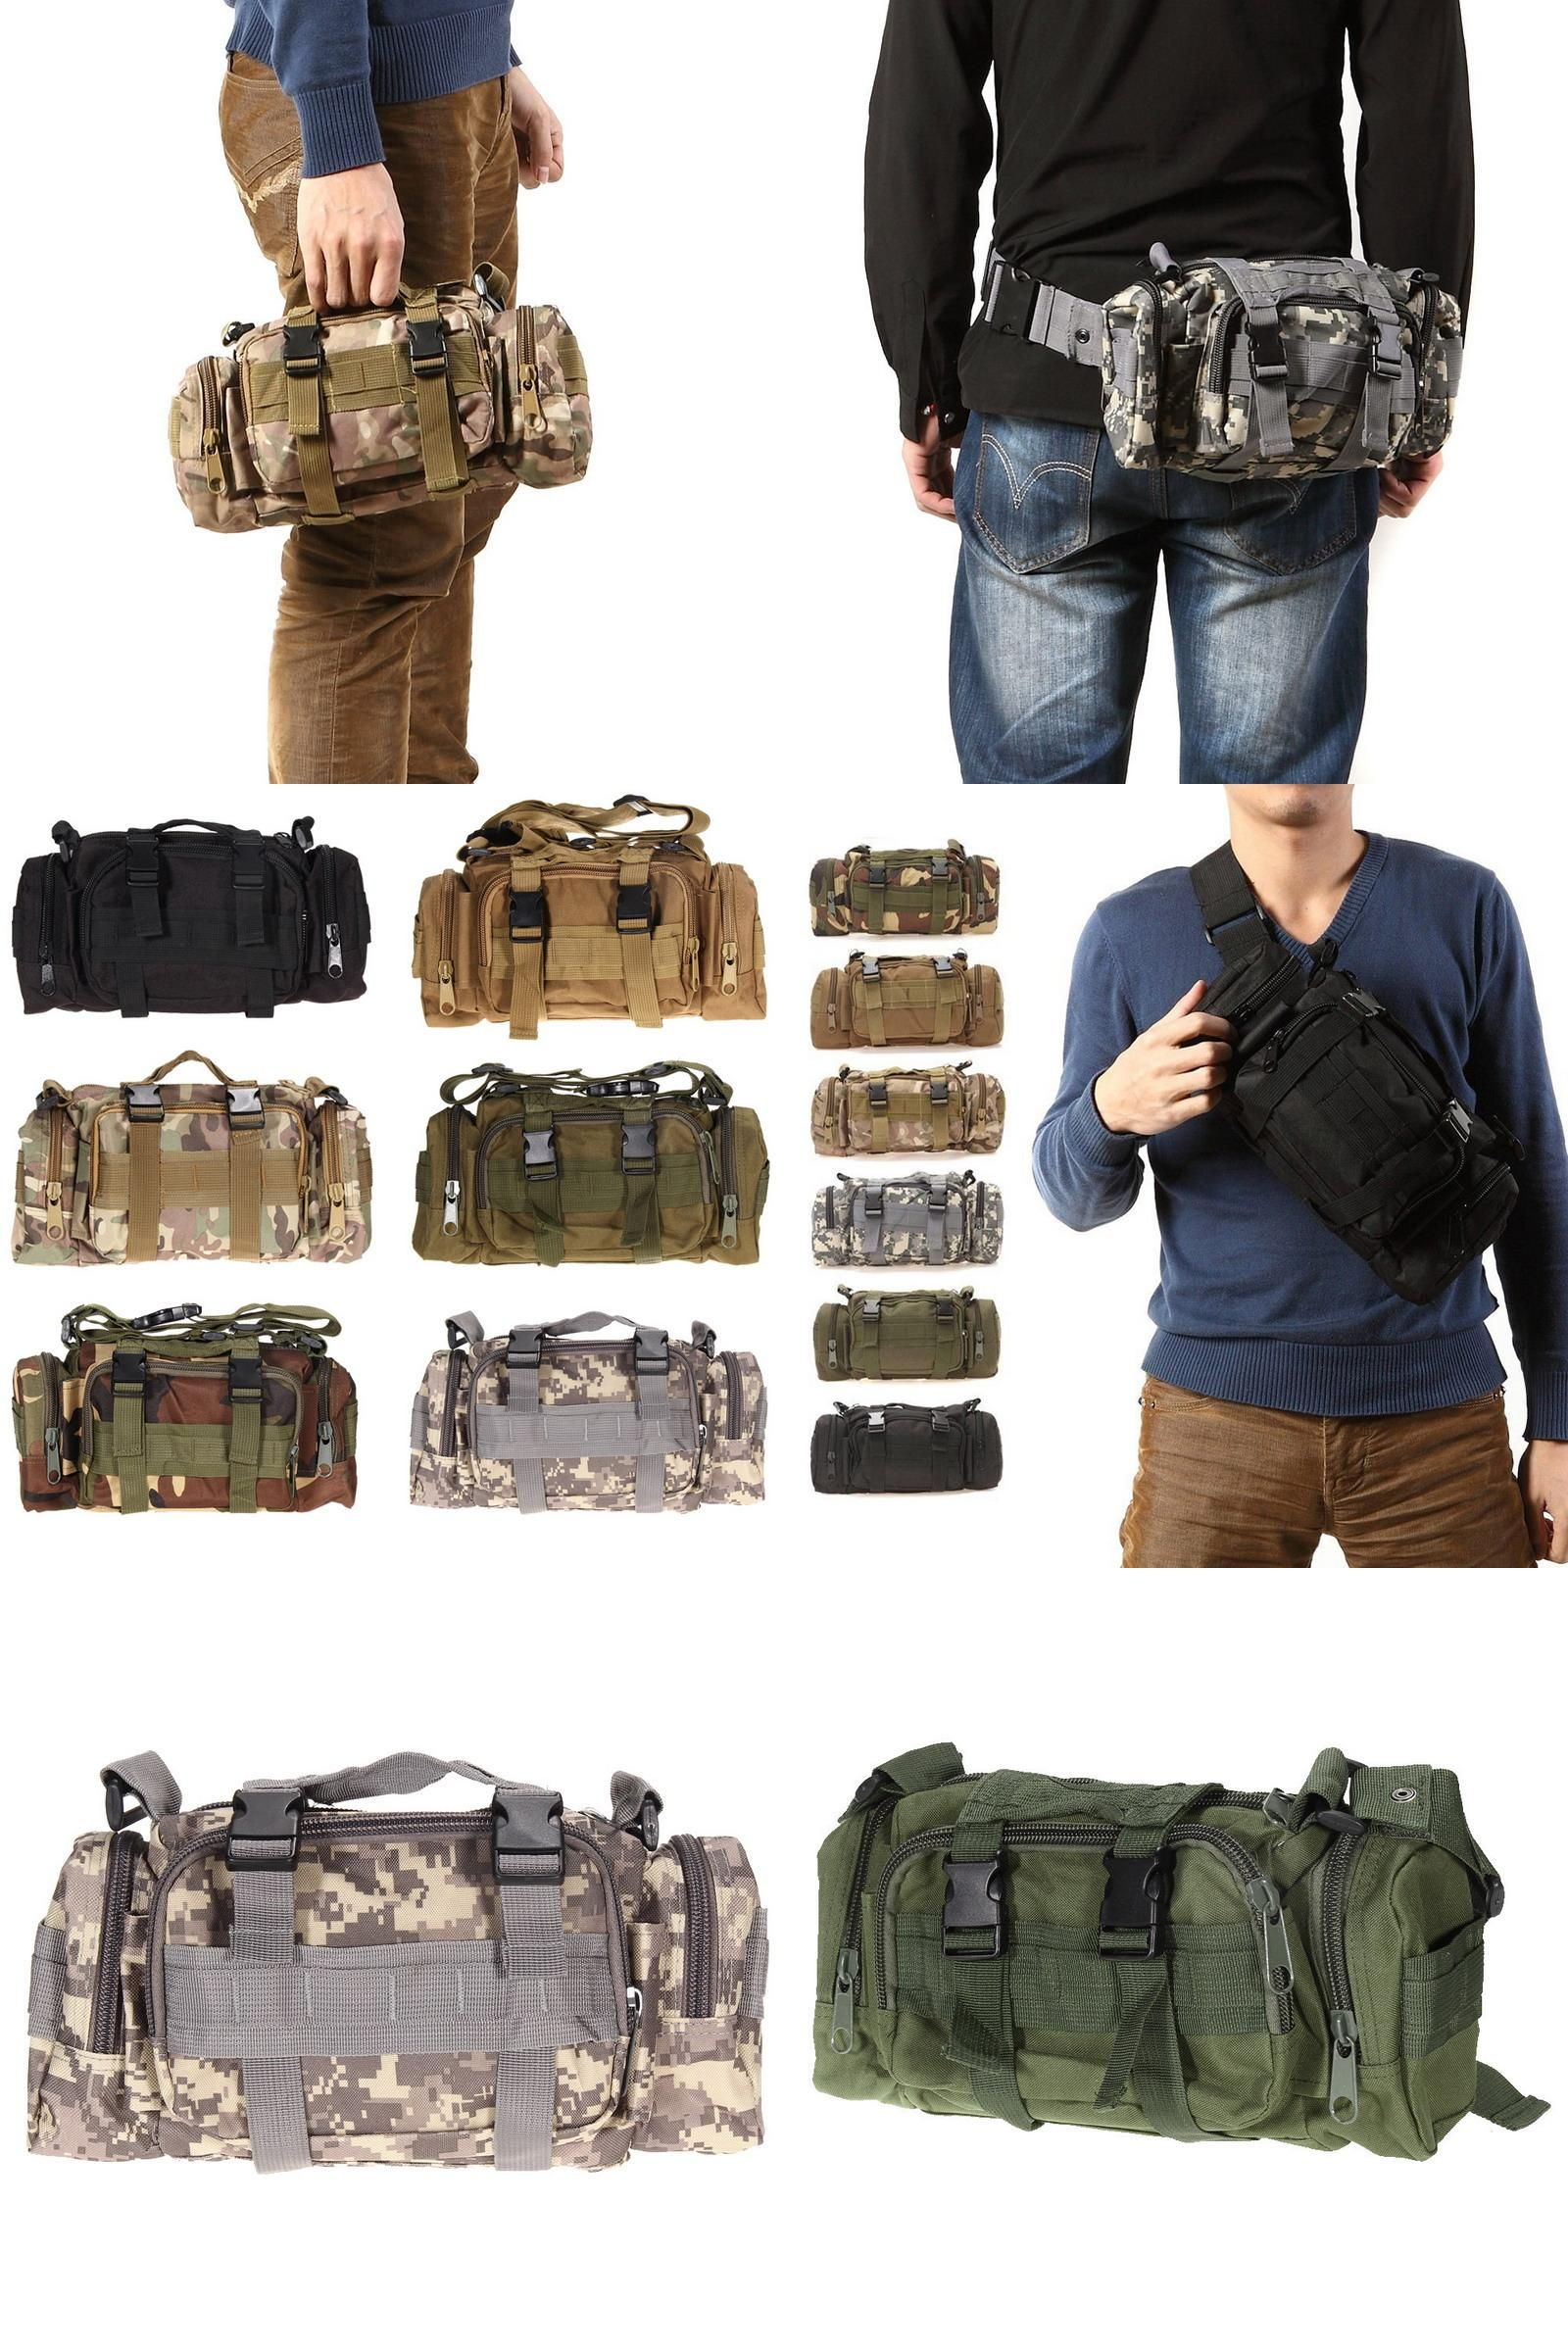 73447ecaa8d2  Visit to Buy  Tactical Bag Sport Bags 600D Waterproof Oxford Fabric  Military Waist Pack Molle Outdoor Pouch Bag for Camping Hiking EA14   Advertise…